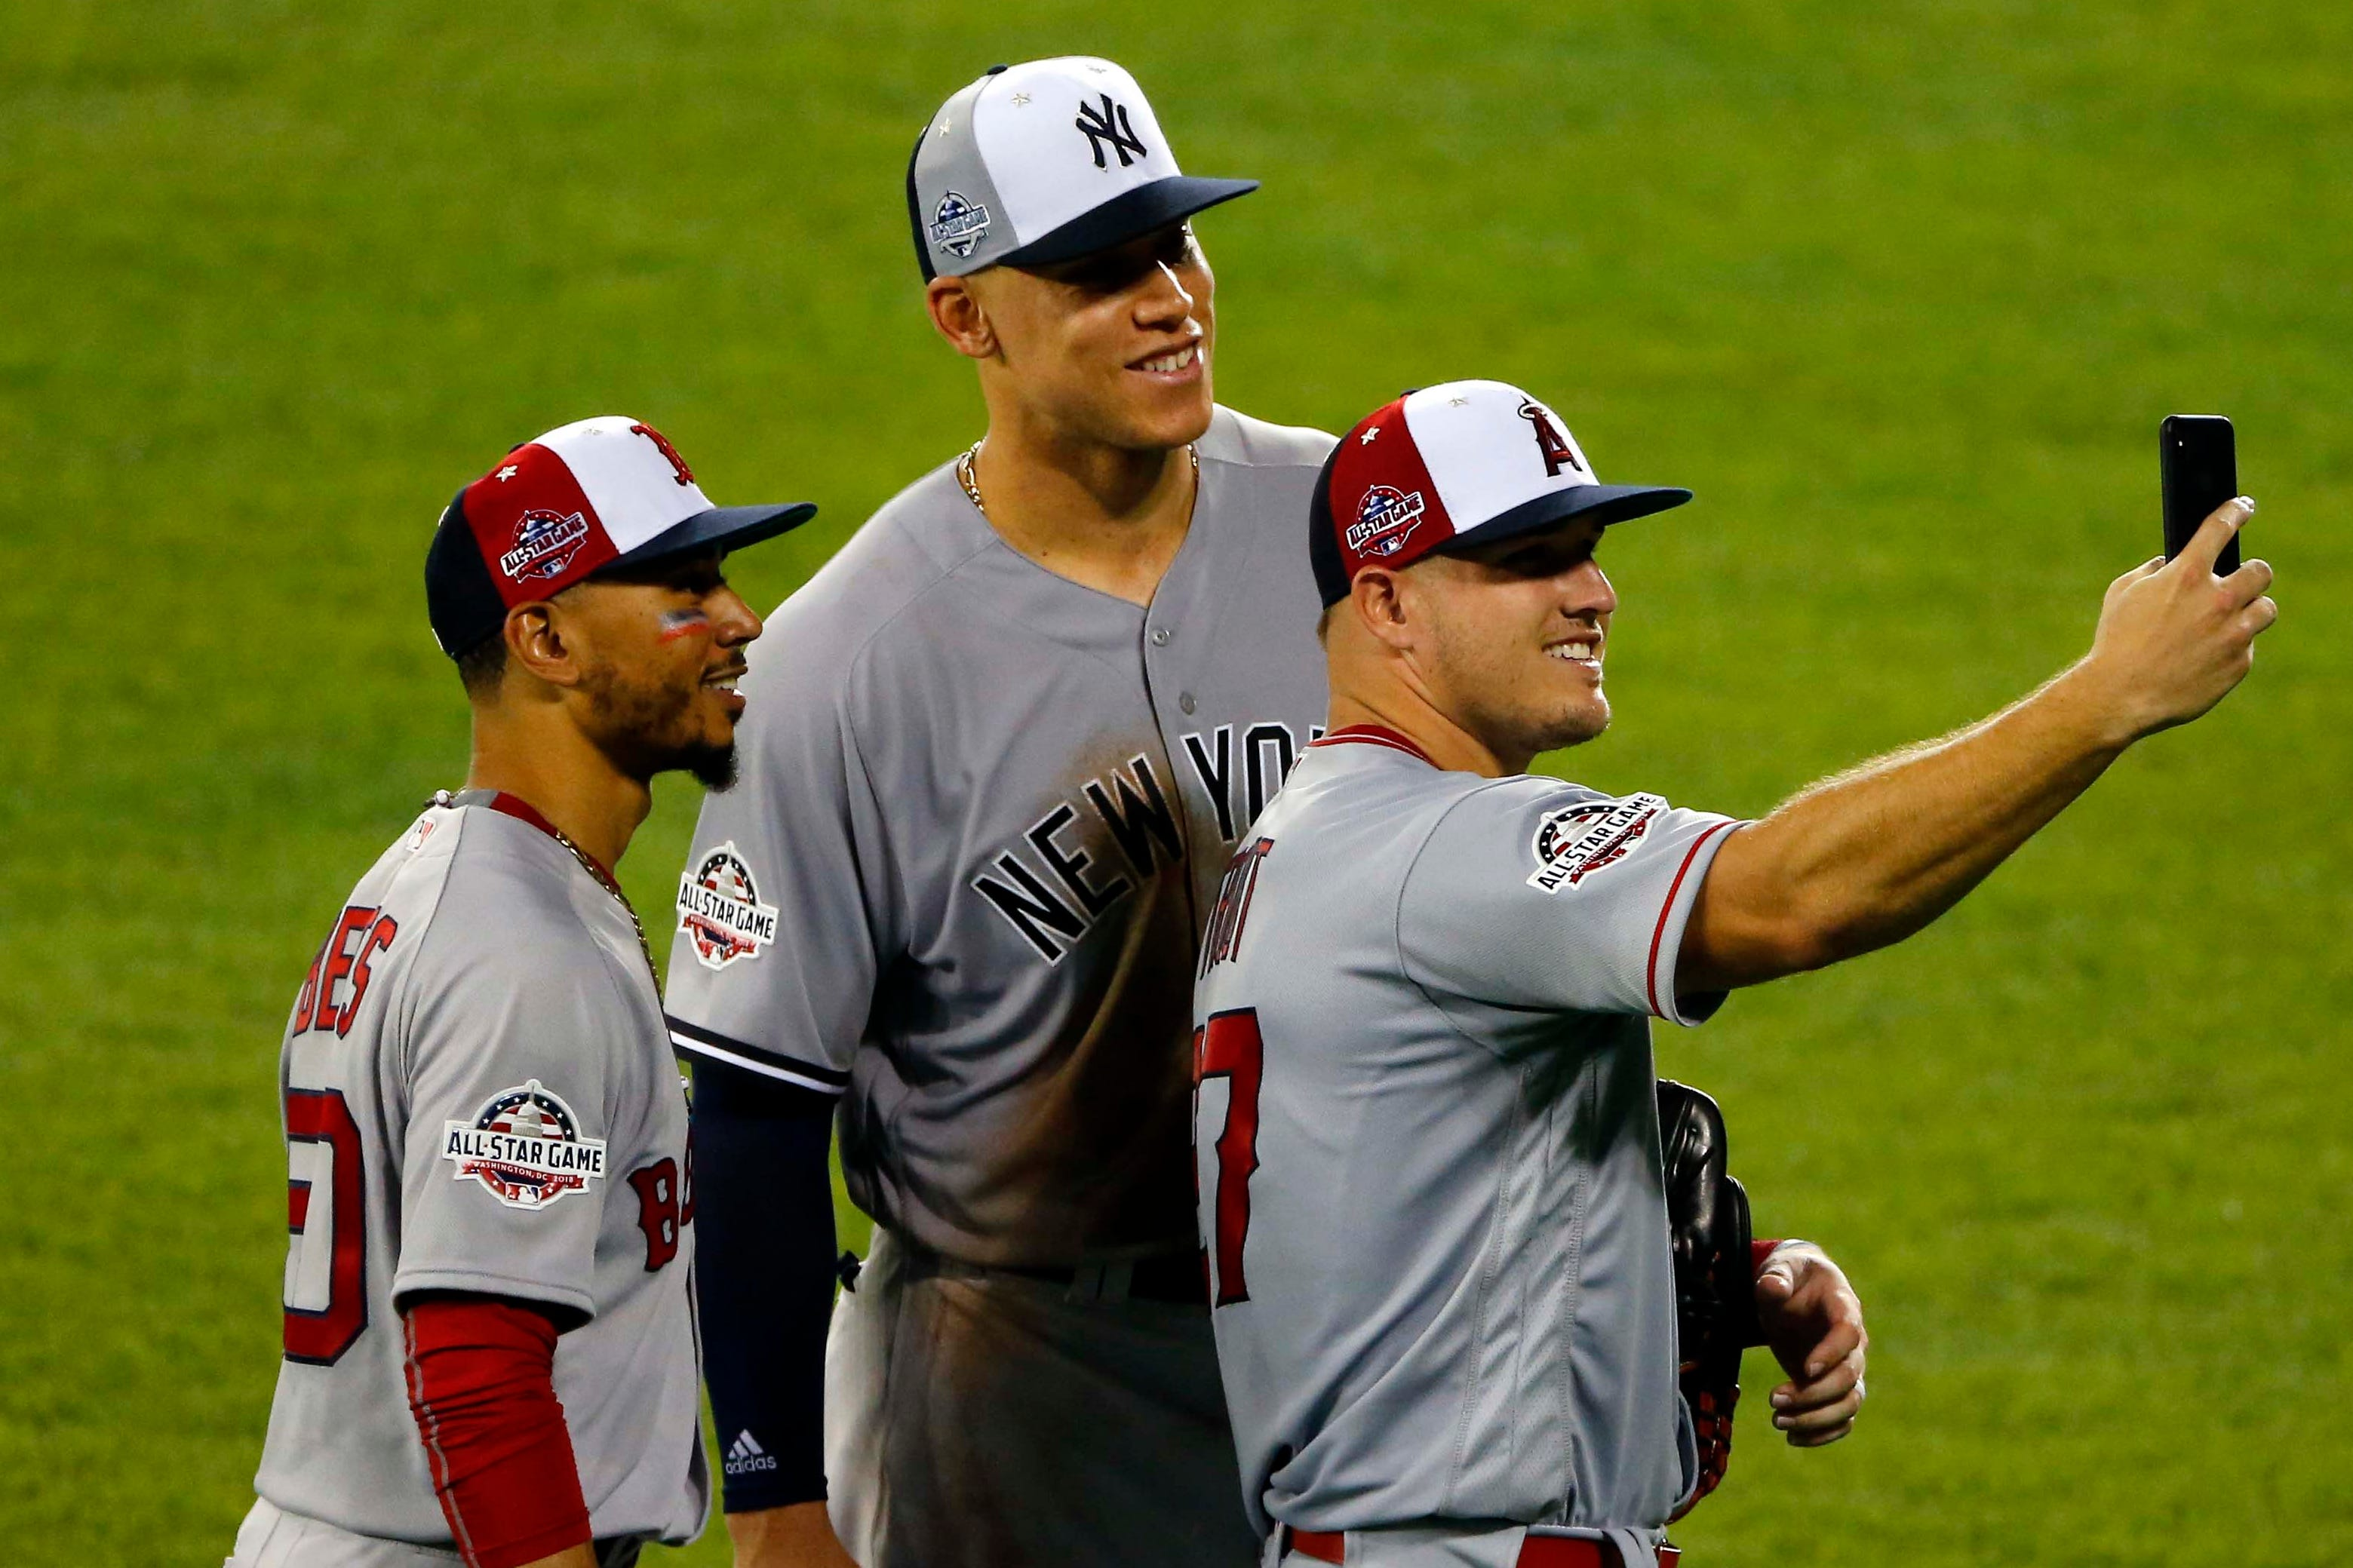 Mookie Betts, Aaron Judge and Mike Trout during the 2018 All-Star Game.